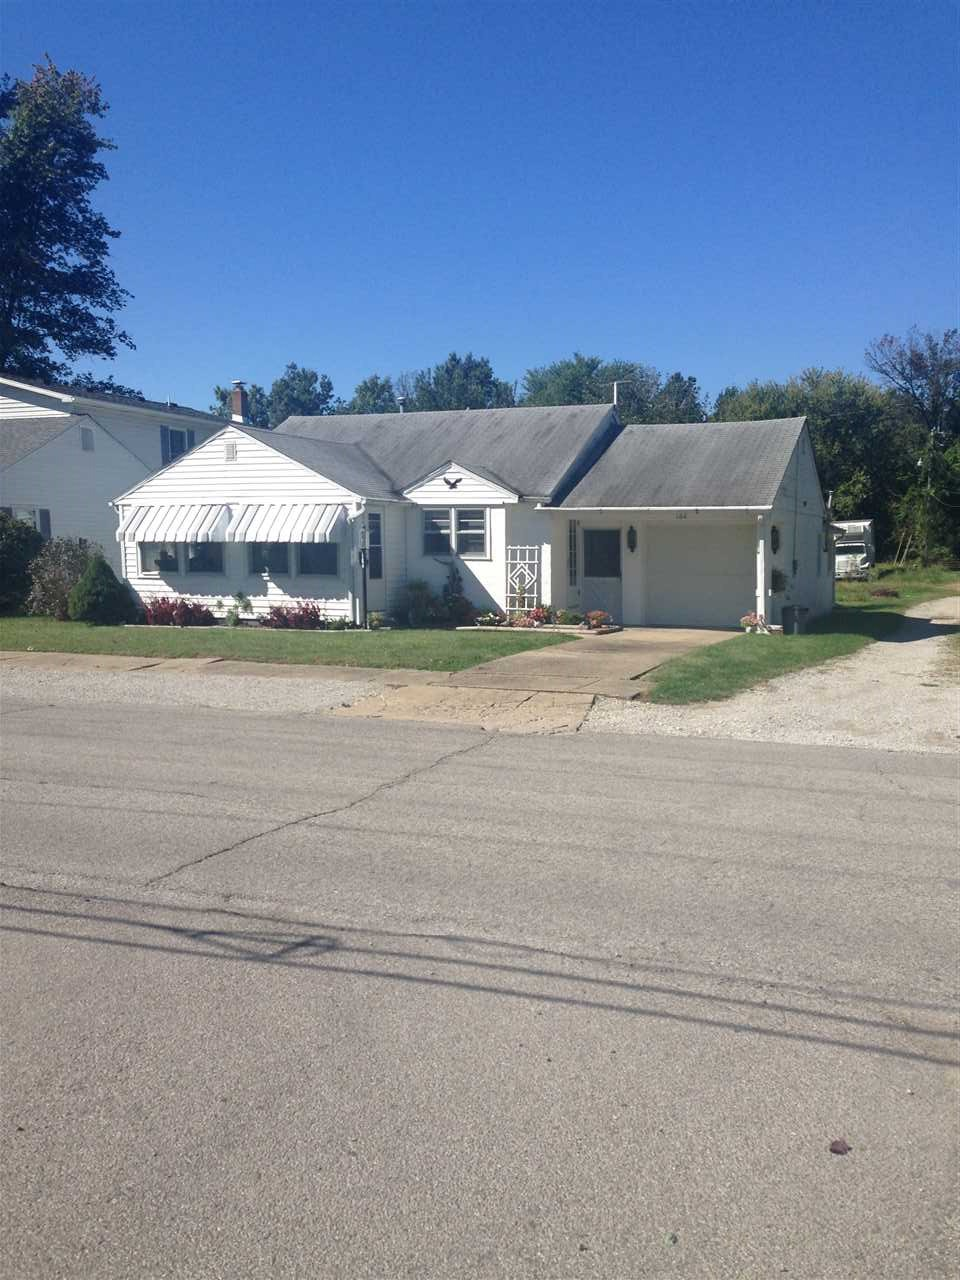 Photo of 164 NW 5 TH ST  Linton  IN